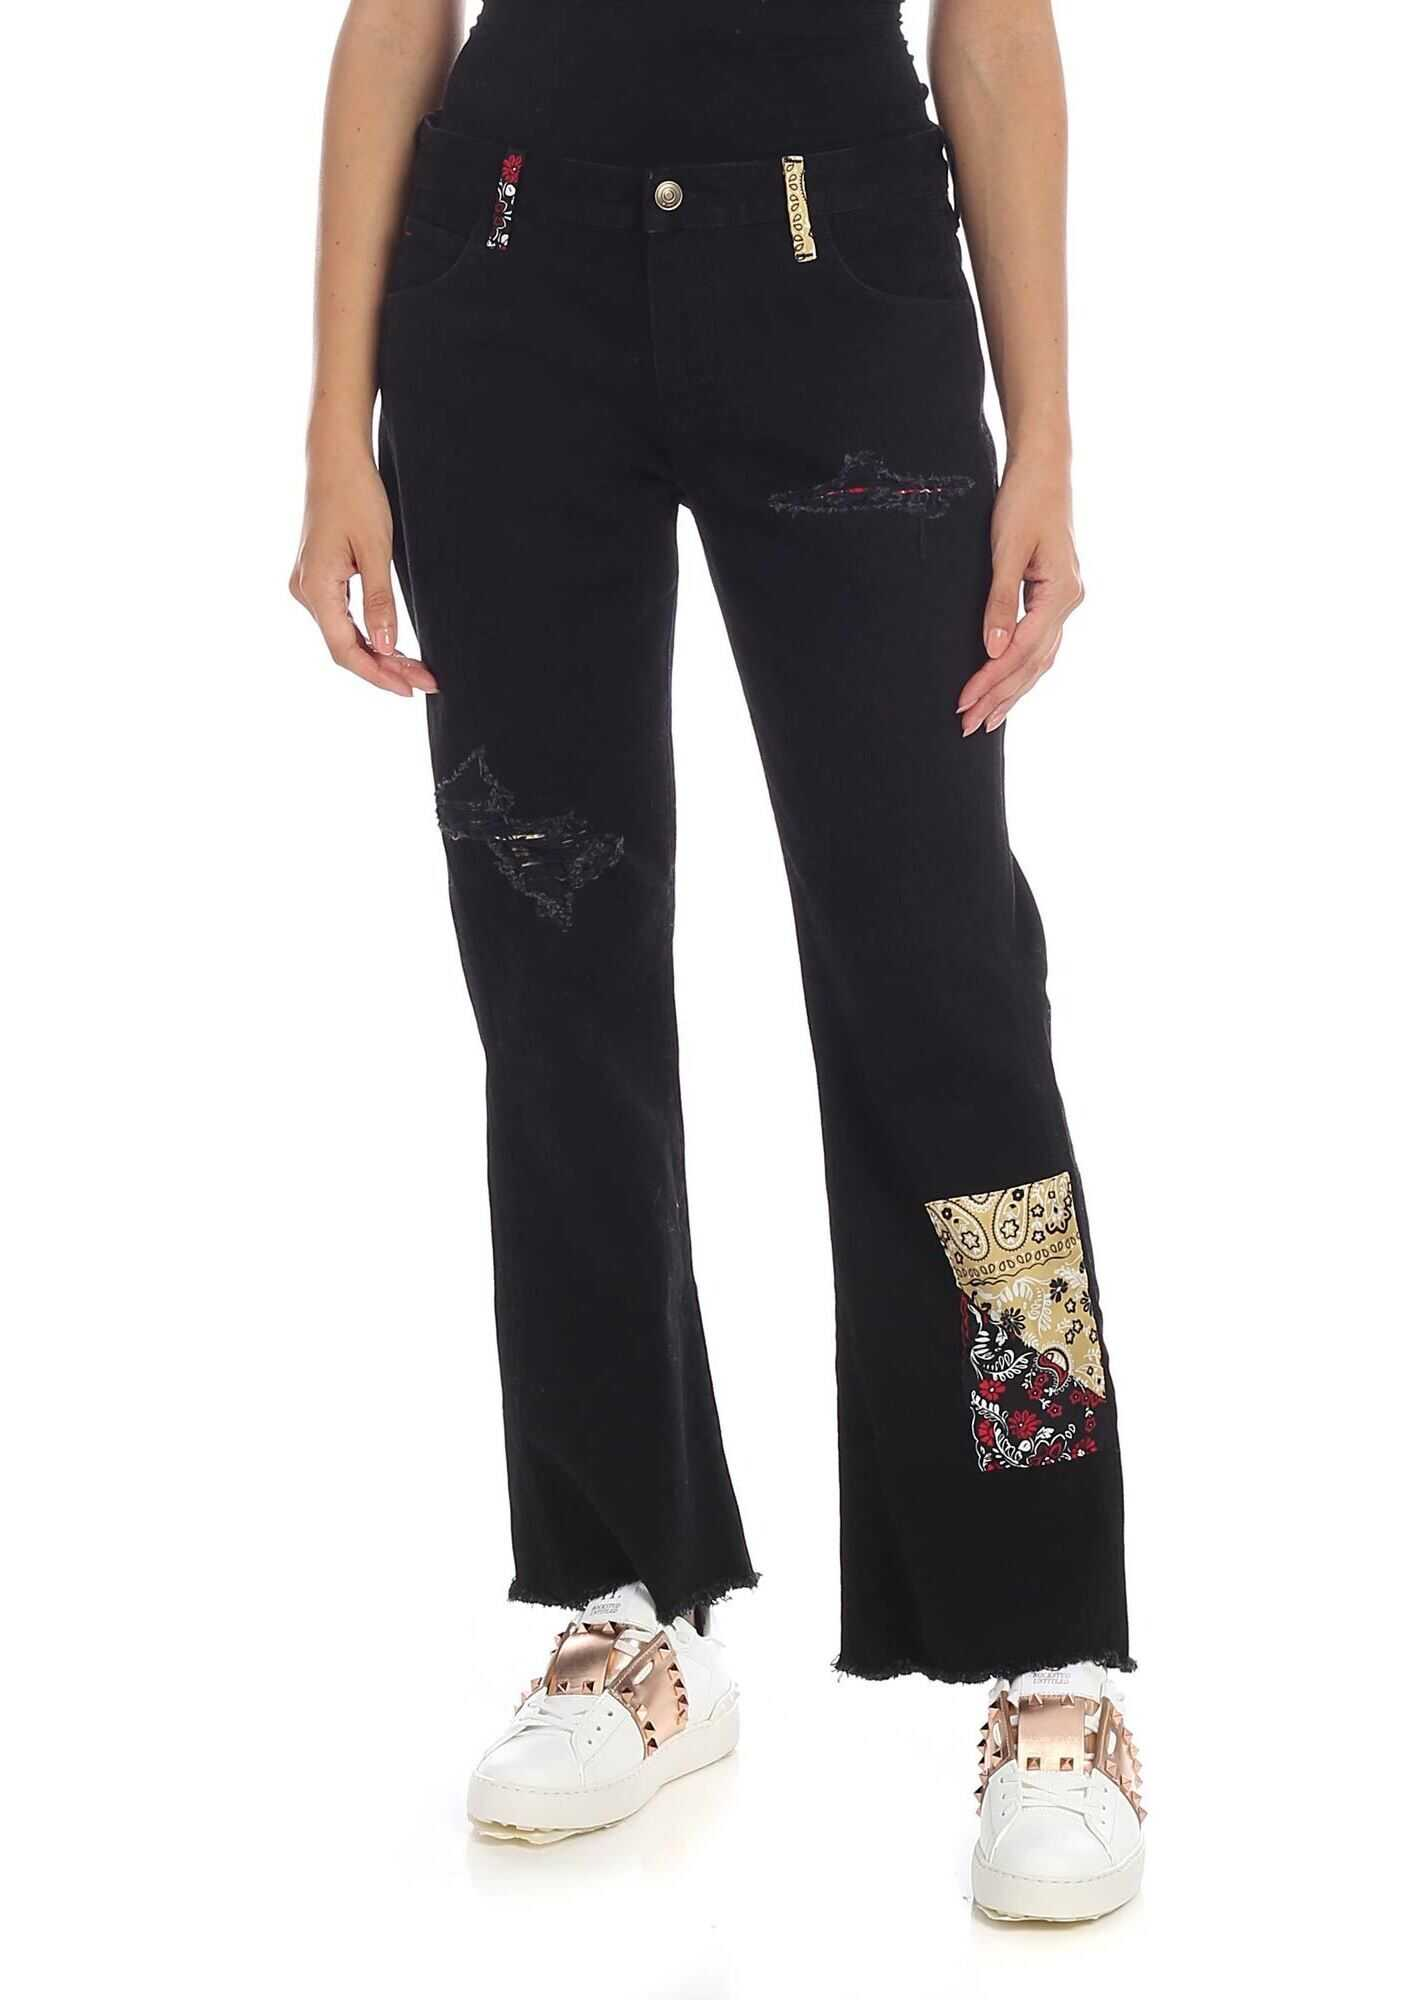 ALANUI Black Denim Trousers With Silk Patches Black